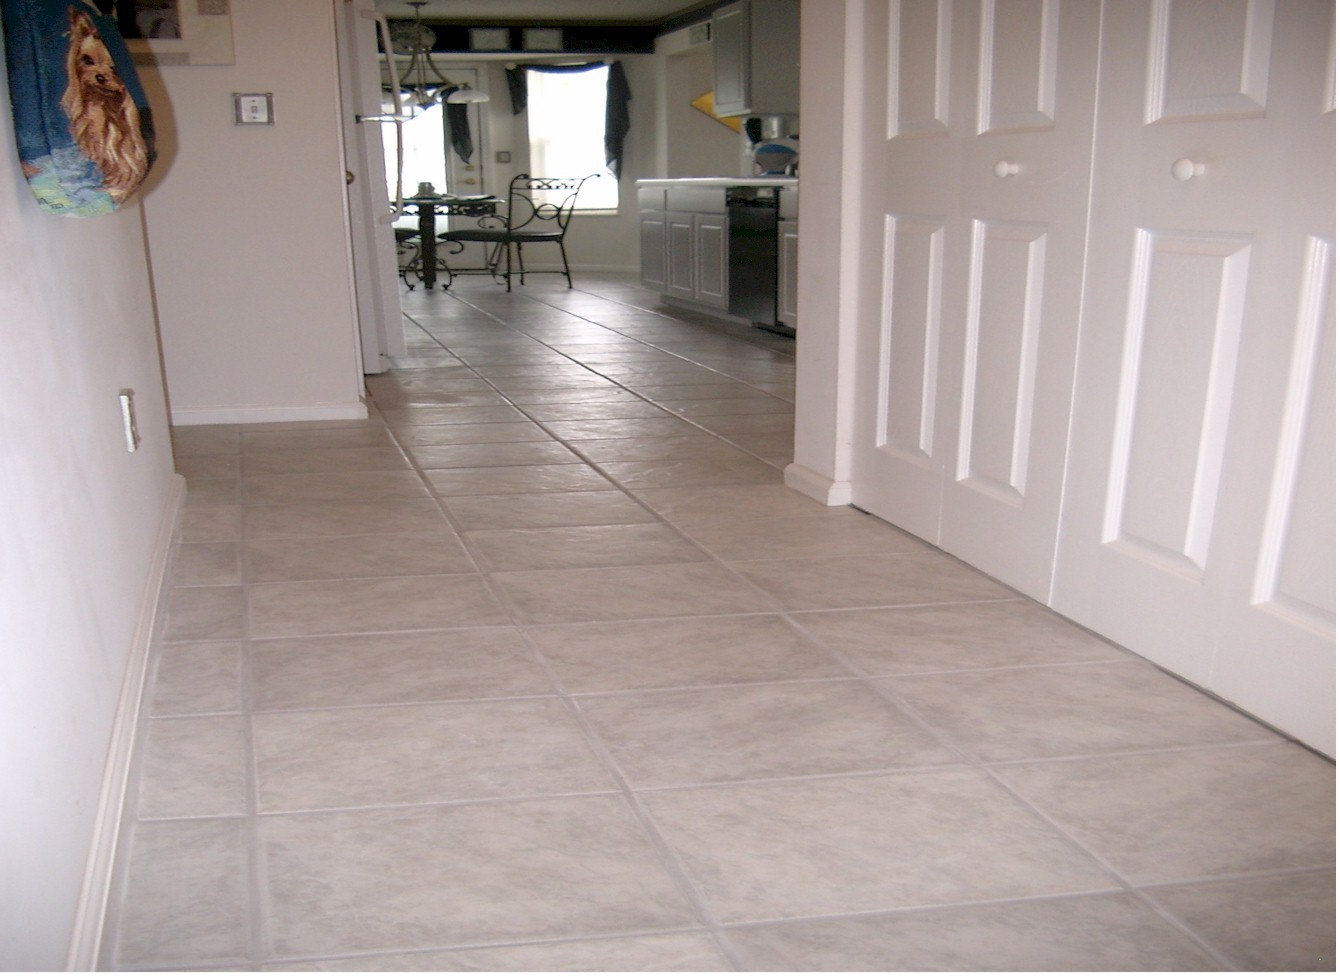 Tile Flooring Remodeling Pictures Pictures Of Ceramic Tile Flooring